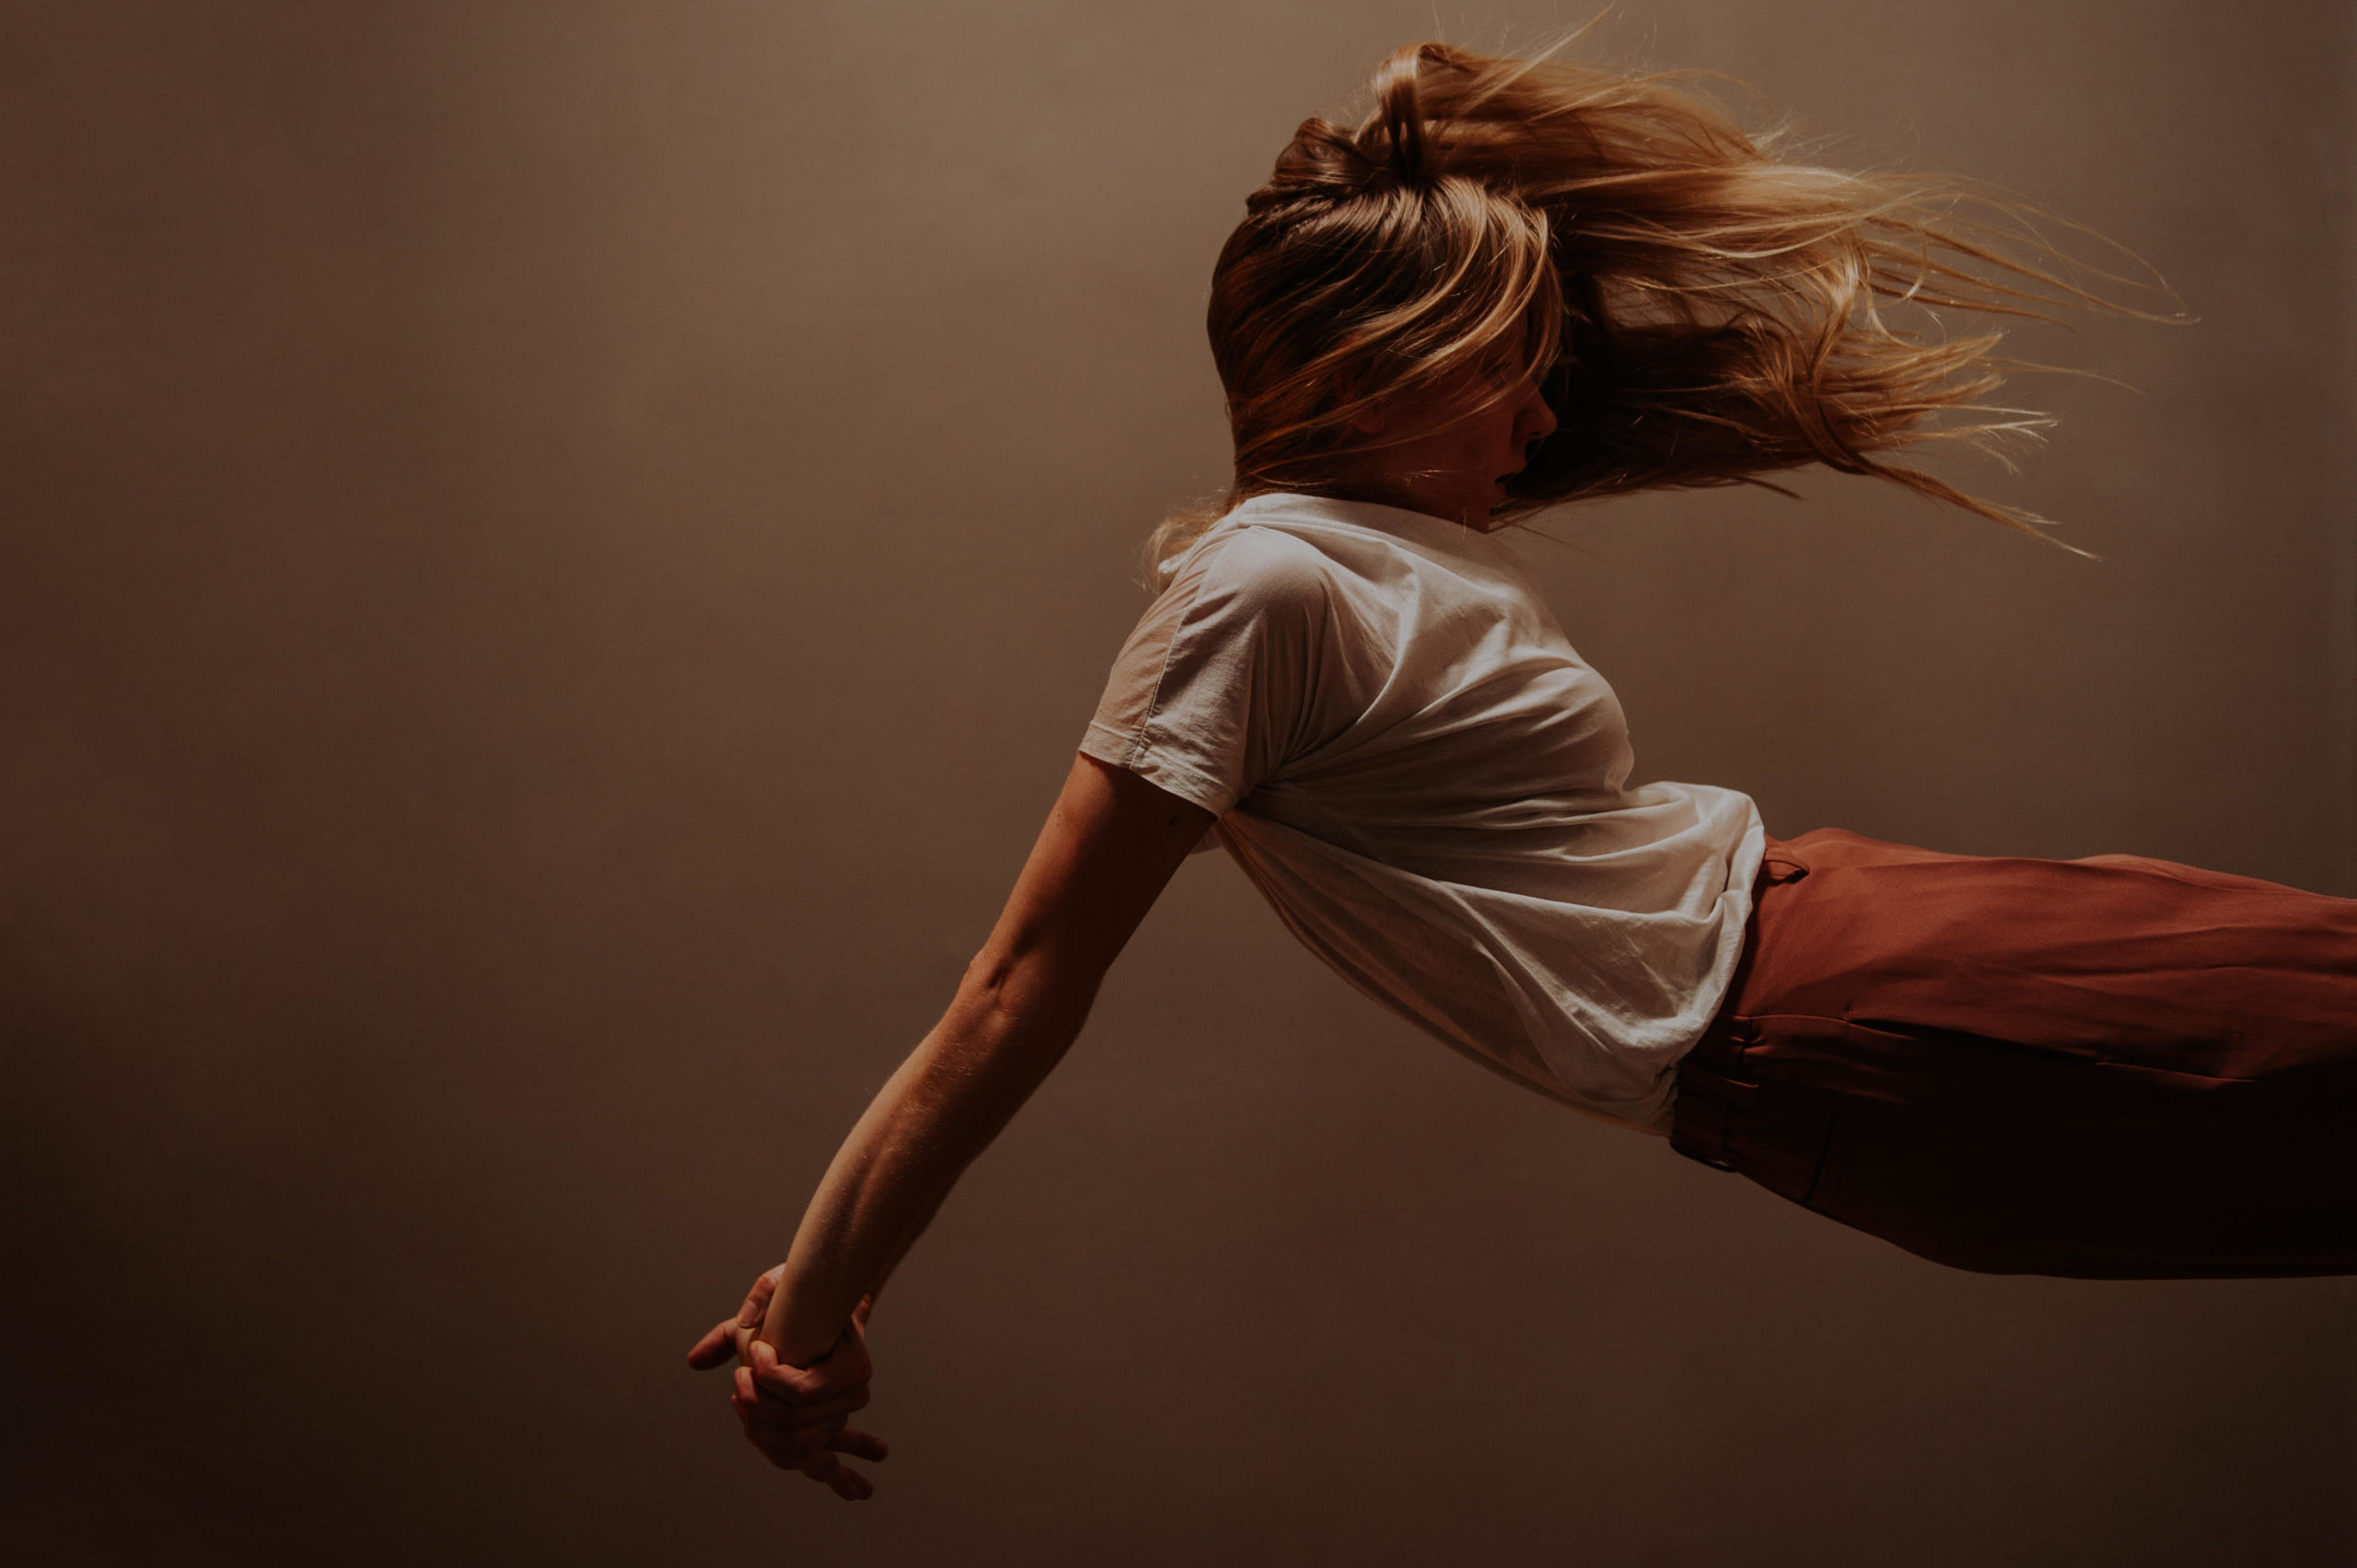 Woman in white tee shirt and orange pants does a backward dive into the frame from the right-hand side. Her amber hair is windswept.